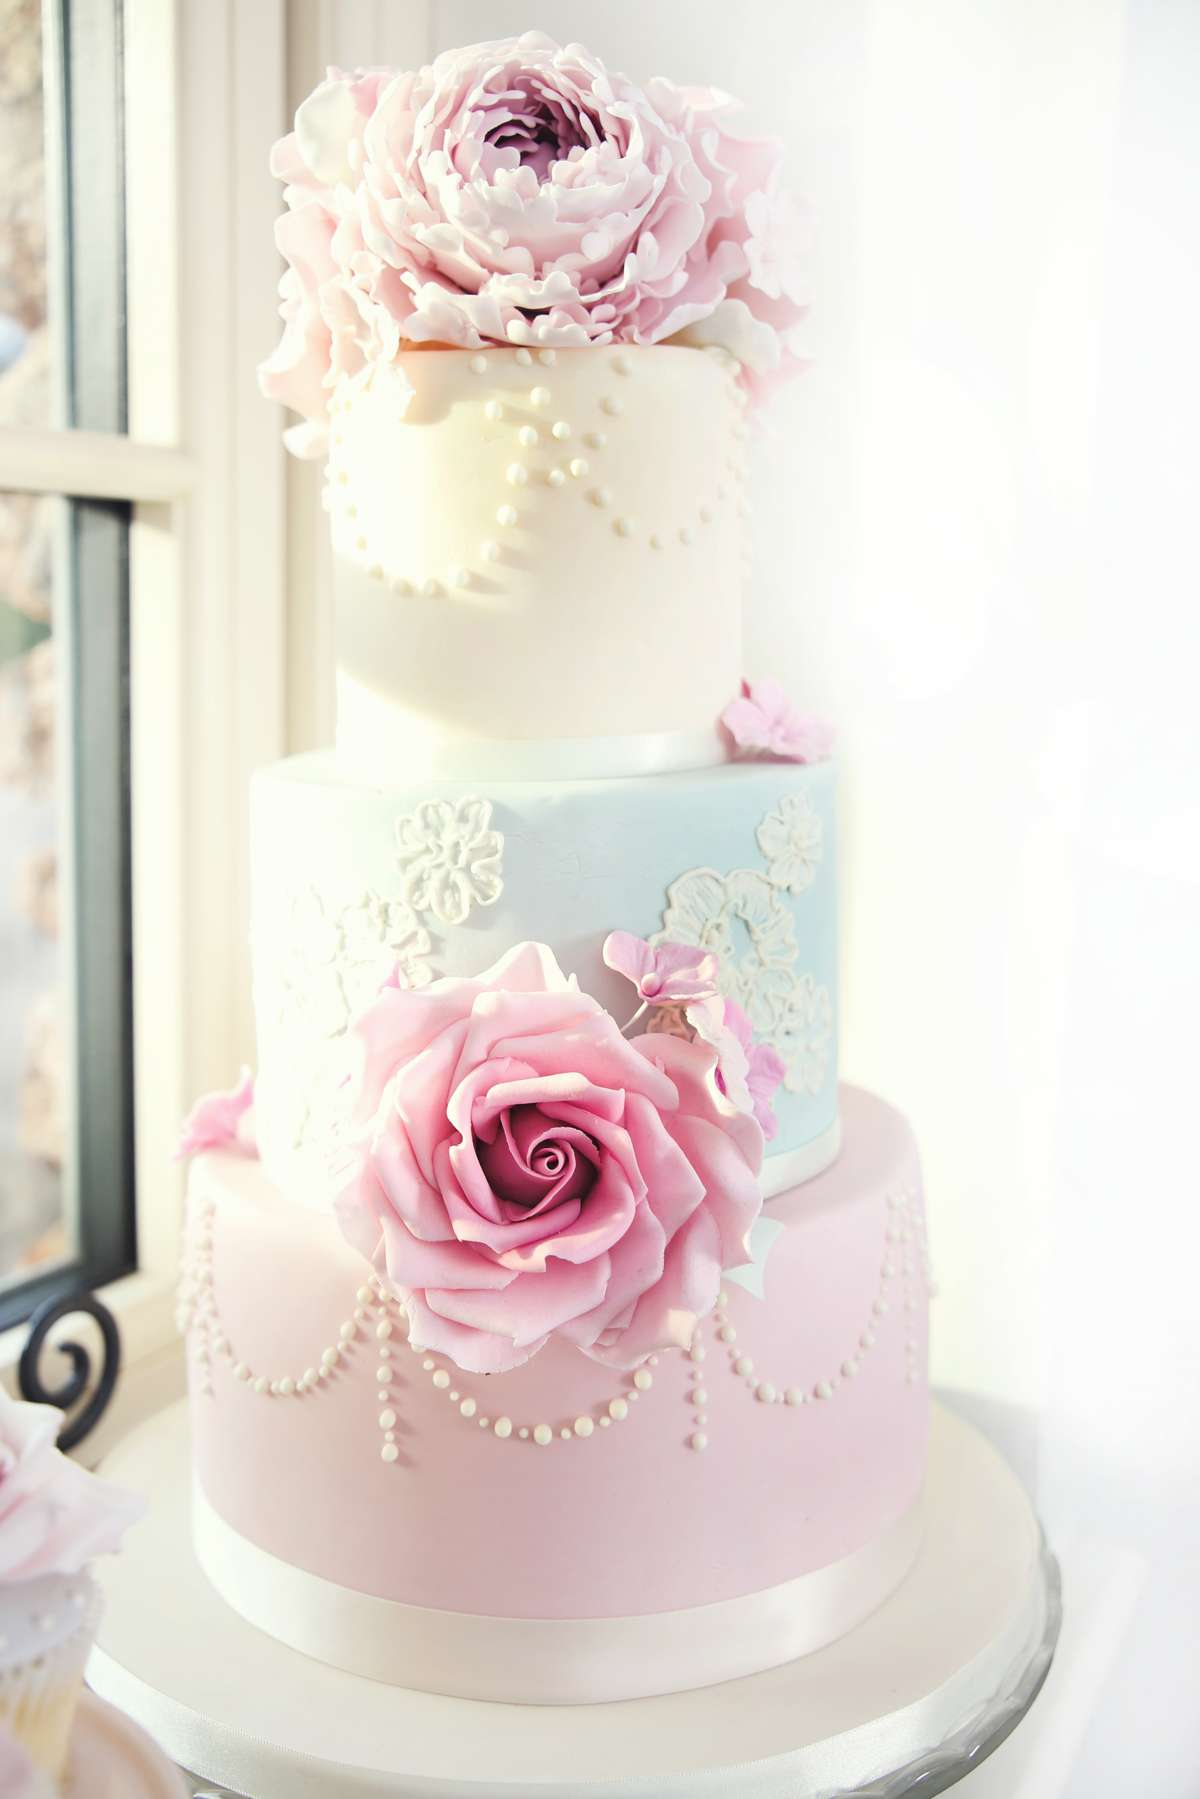 wedding cake styles 2017 wedding cake trends for 2017 our wedding 25808